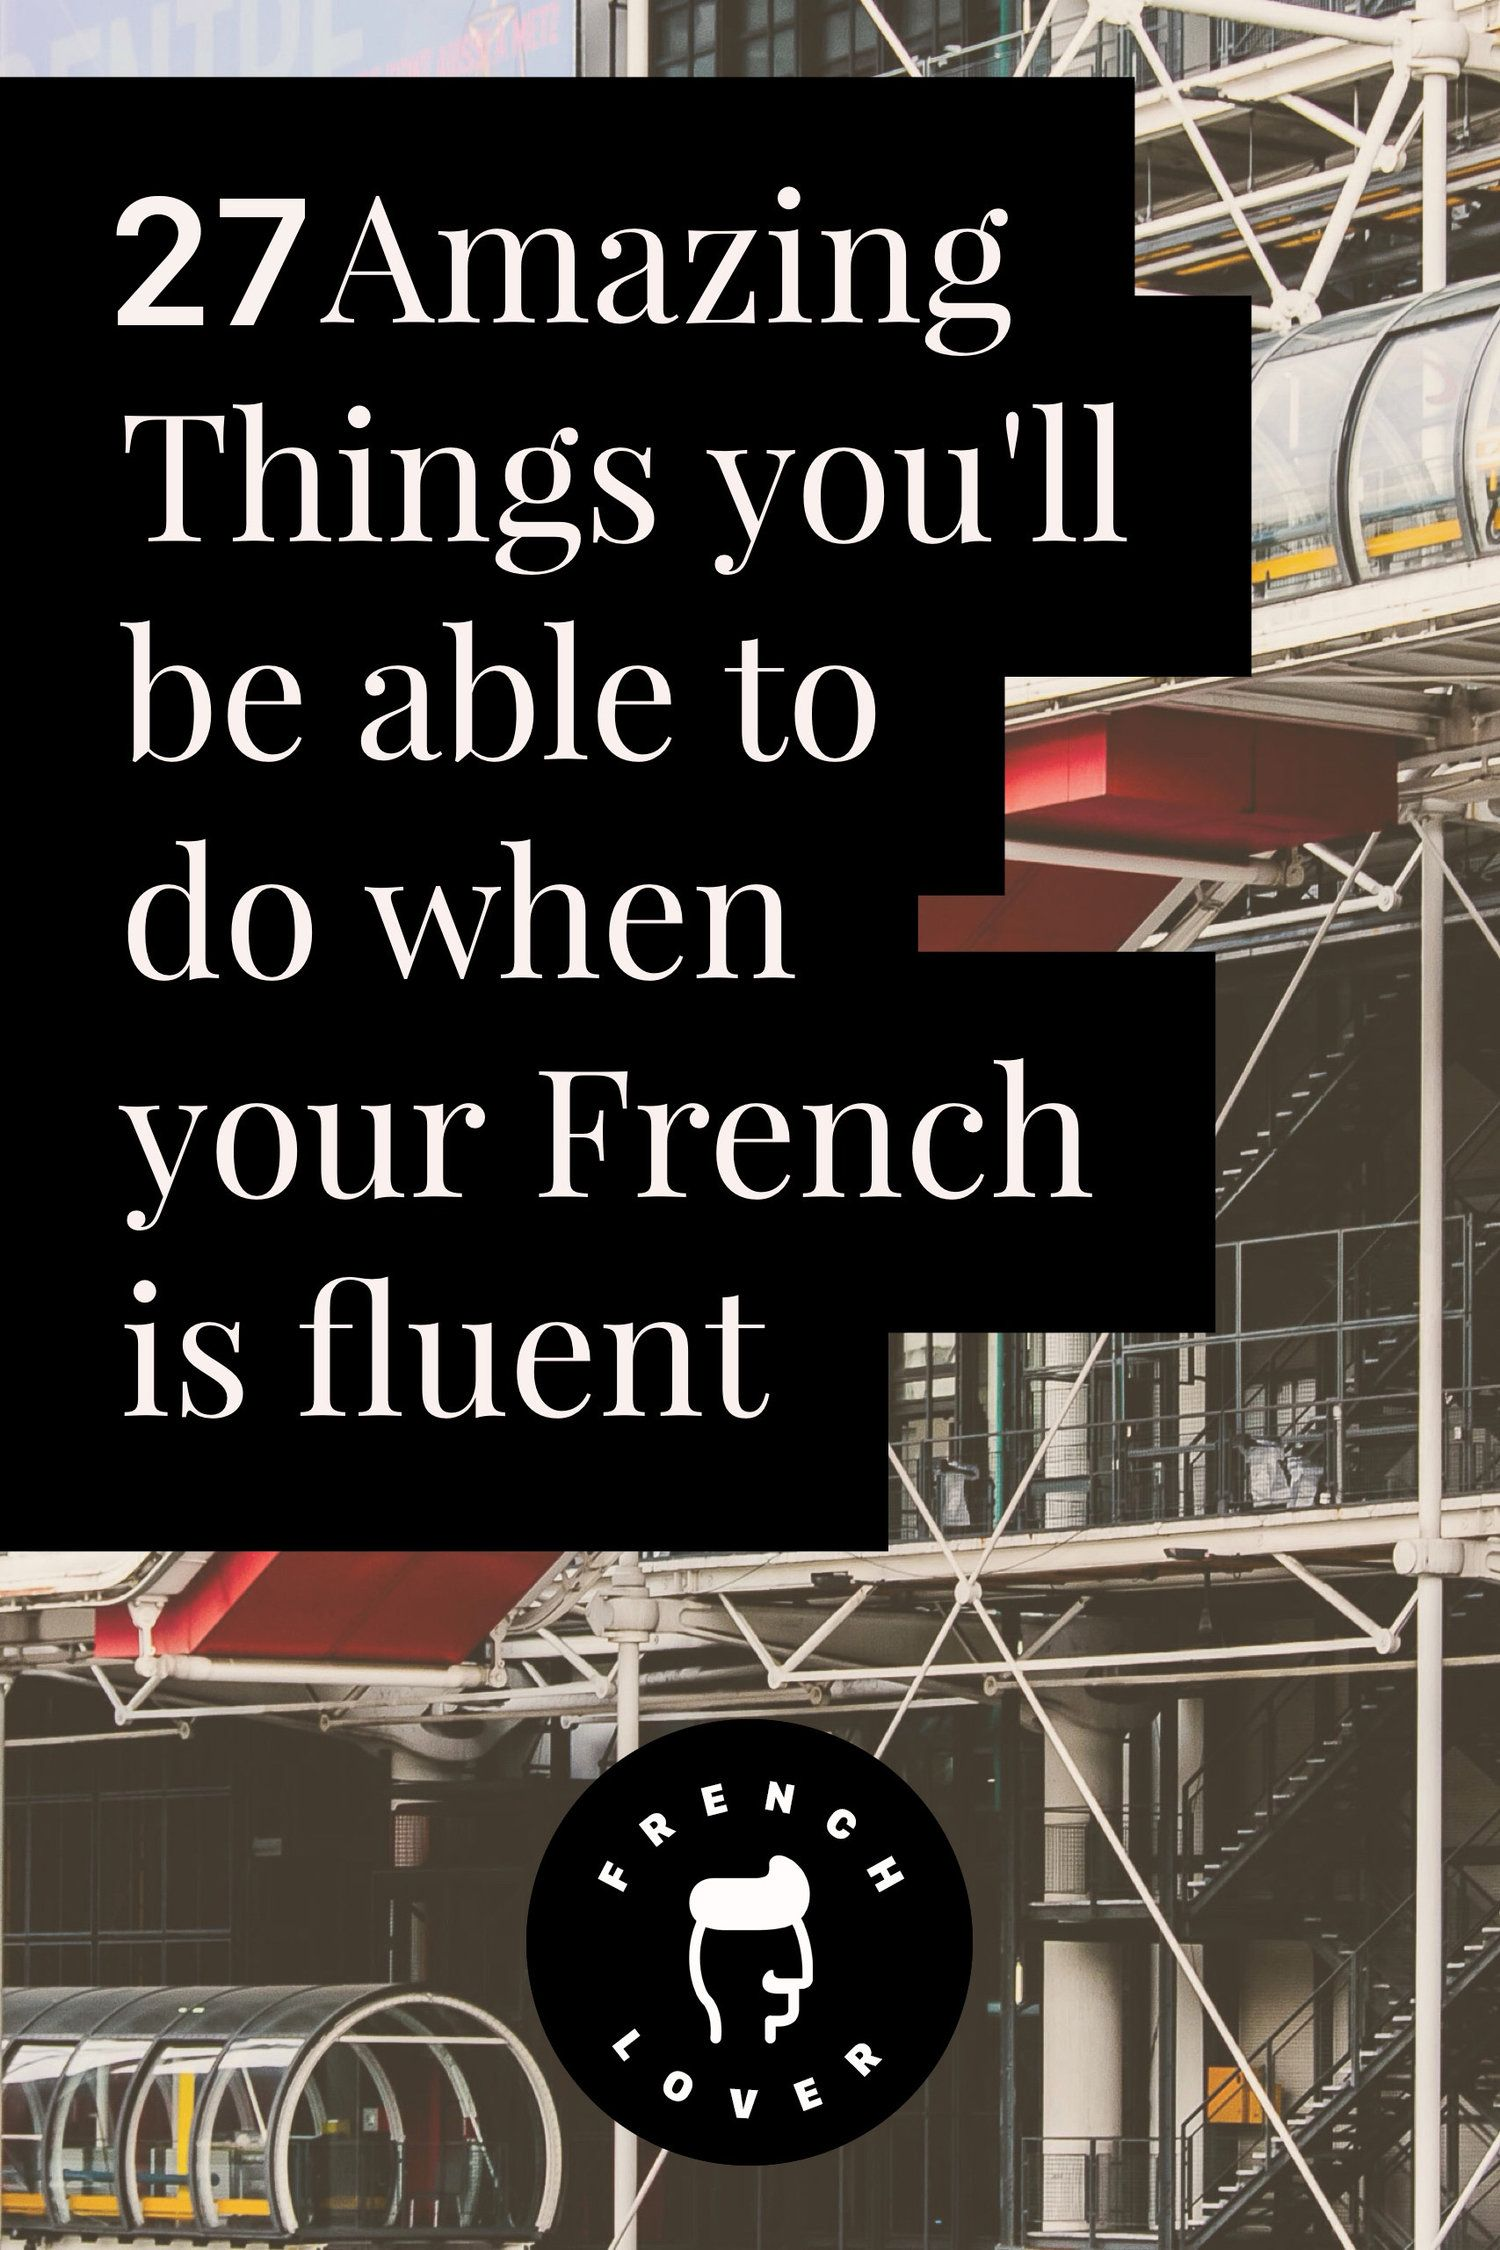 Learning French 27 Amazing Things You Can Do When You Are Fluent